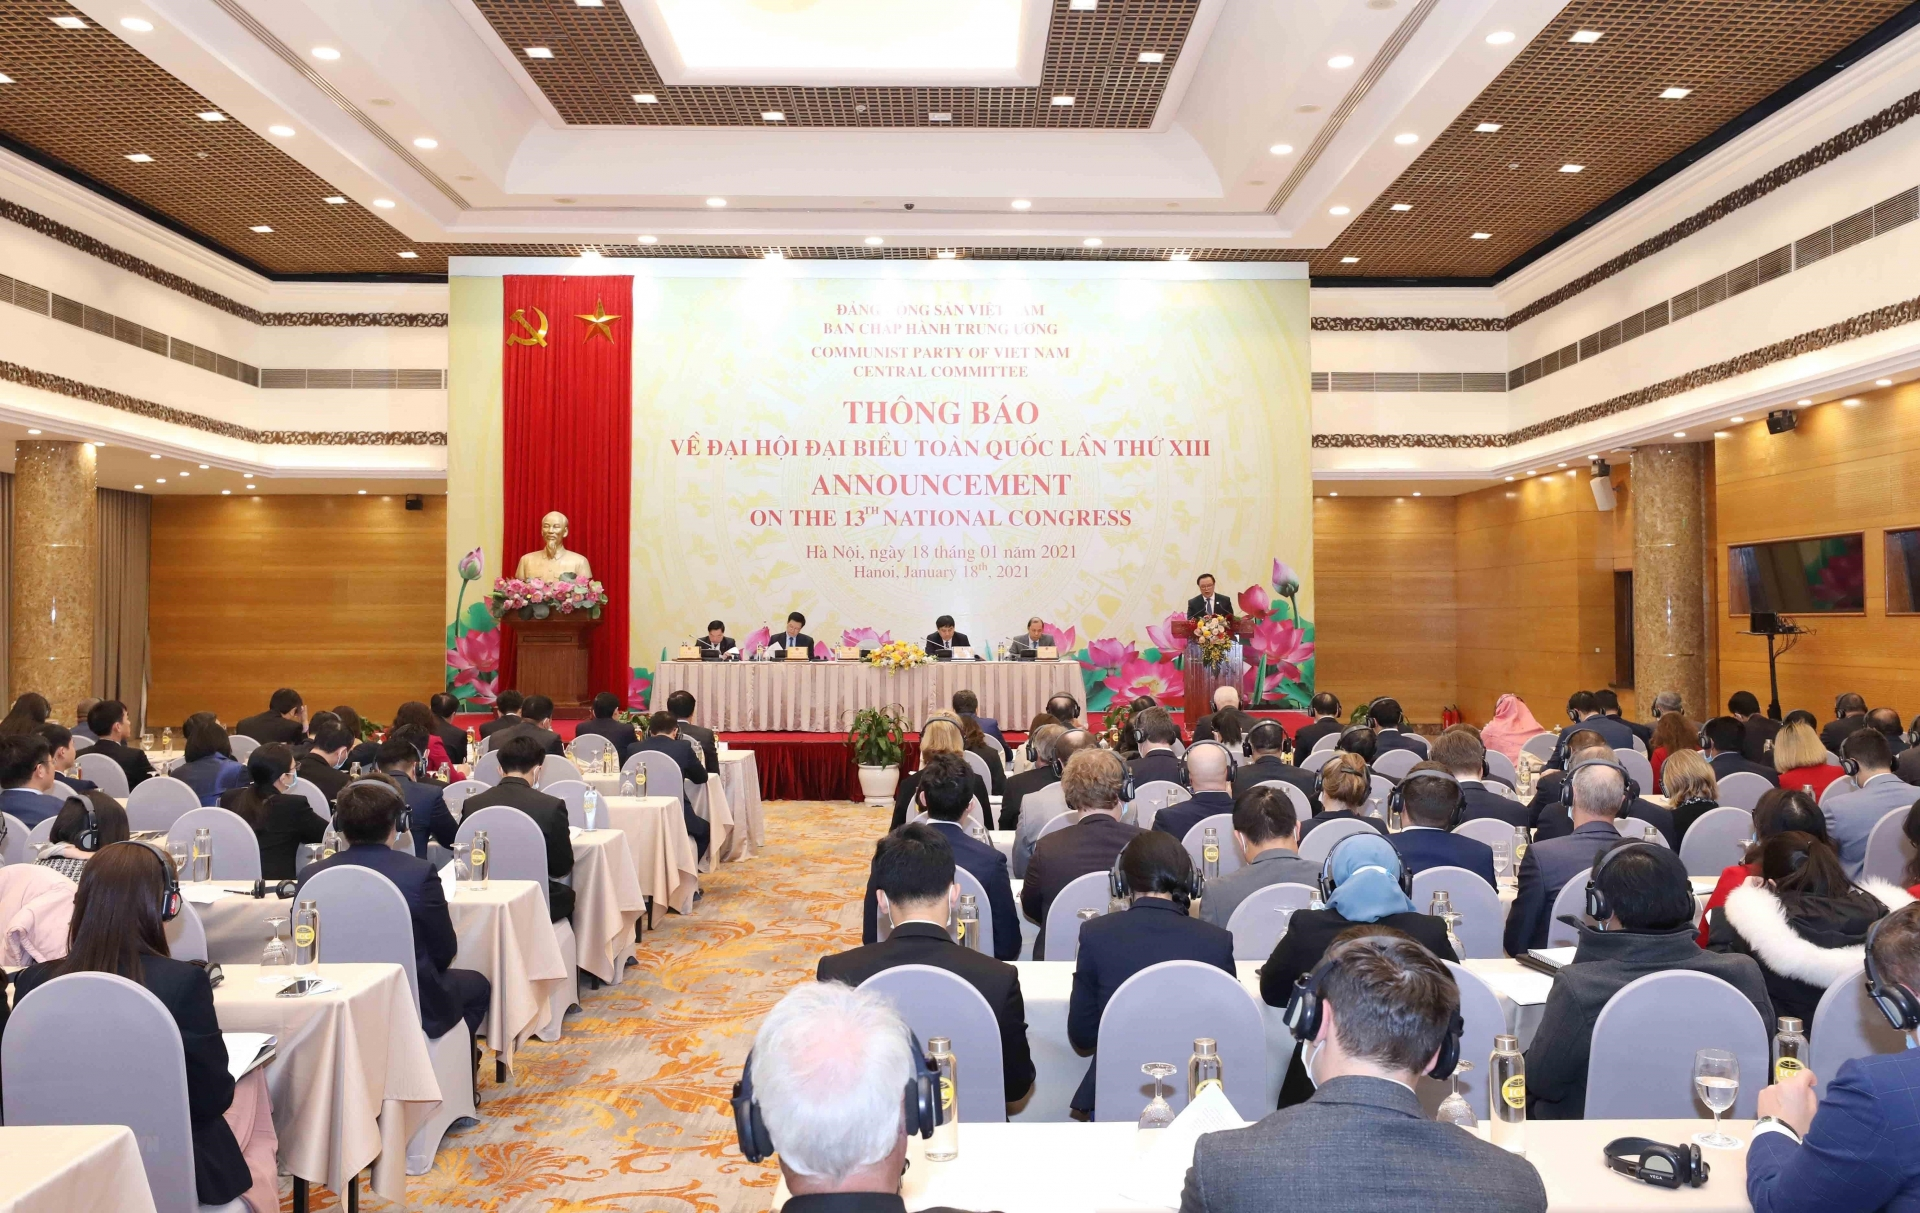 The diplomatic corps and representatives of international organizations in Viet Nam are invited to attend the opening and closing sessions of the 13th National Party Congress